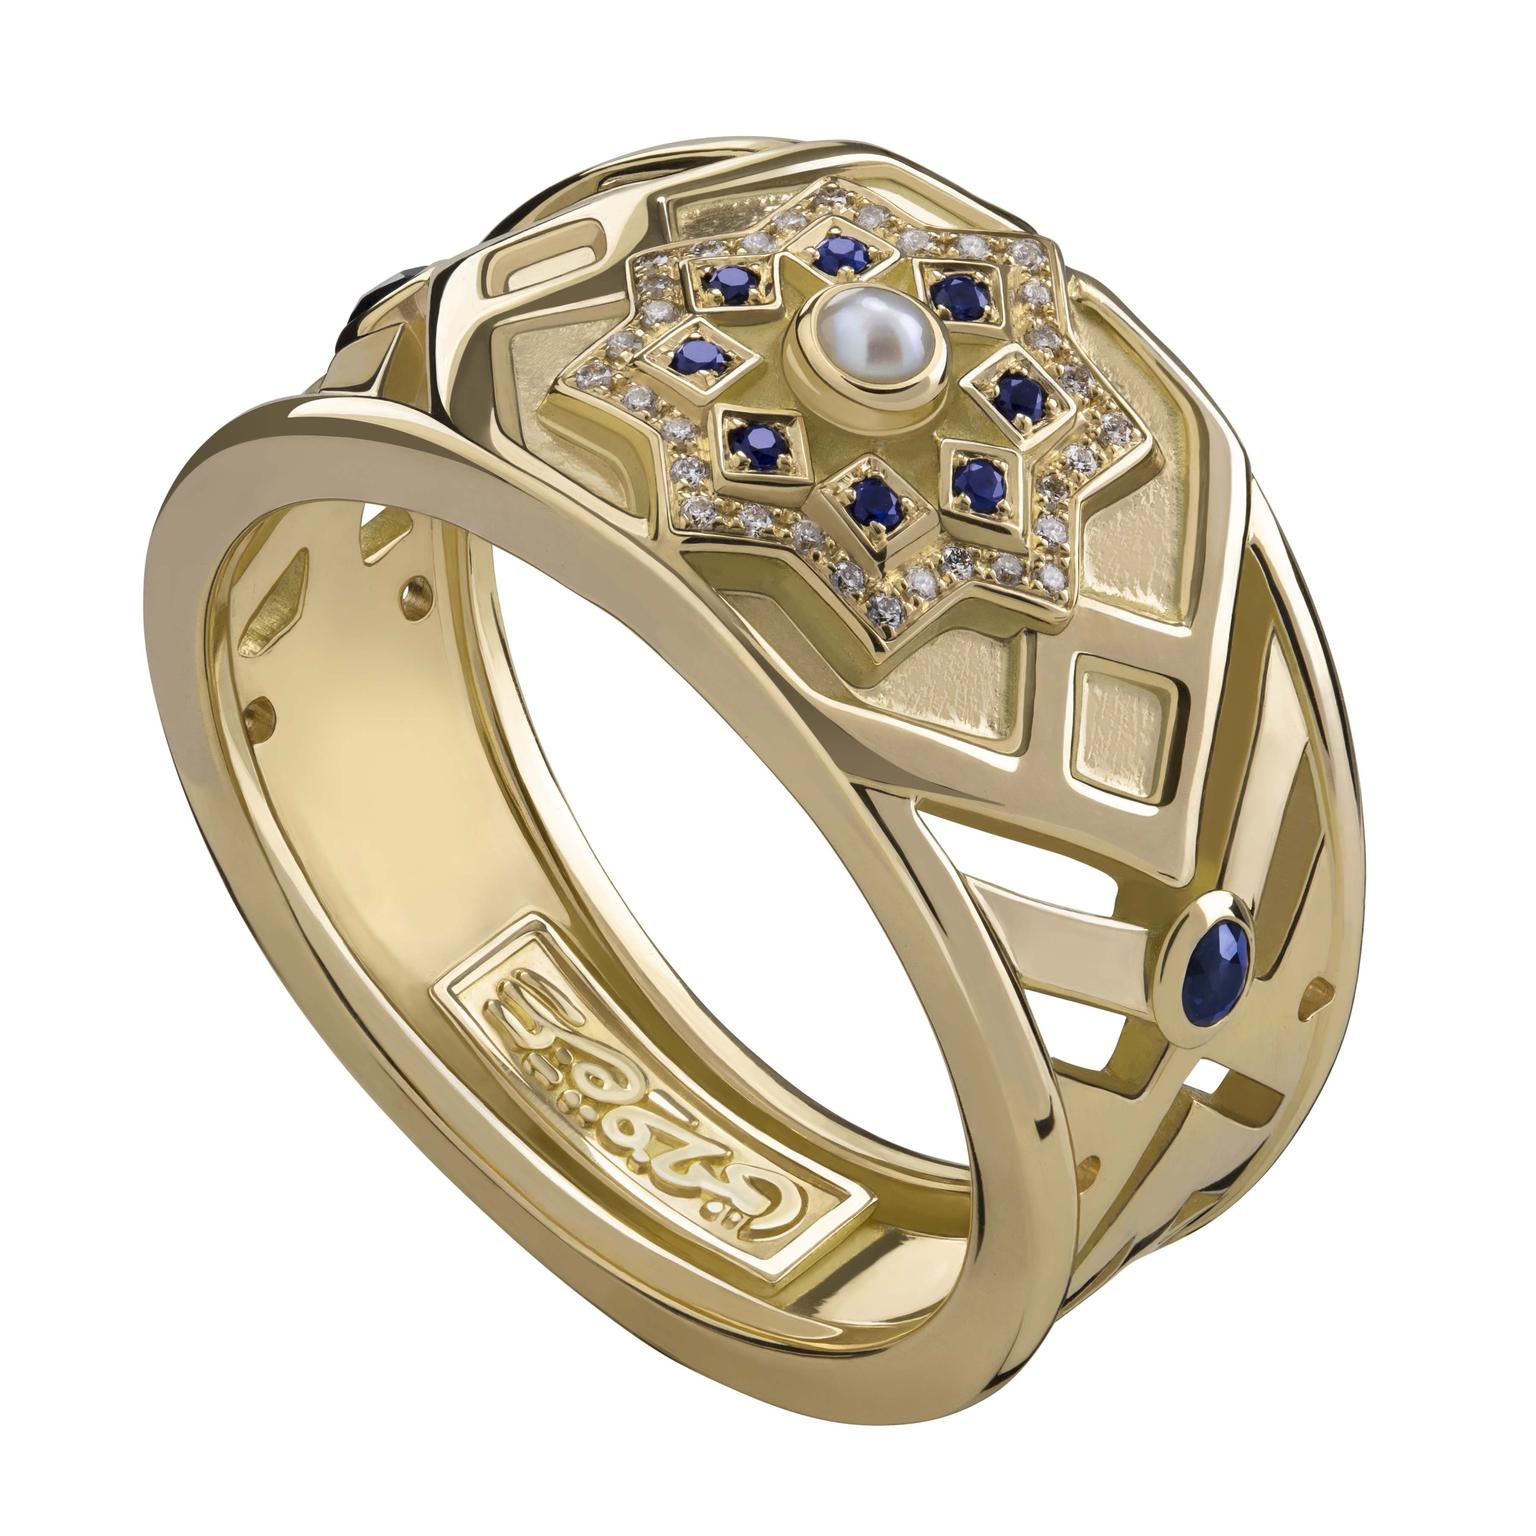 Qalawun ring by Azza Fahmy